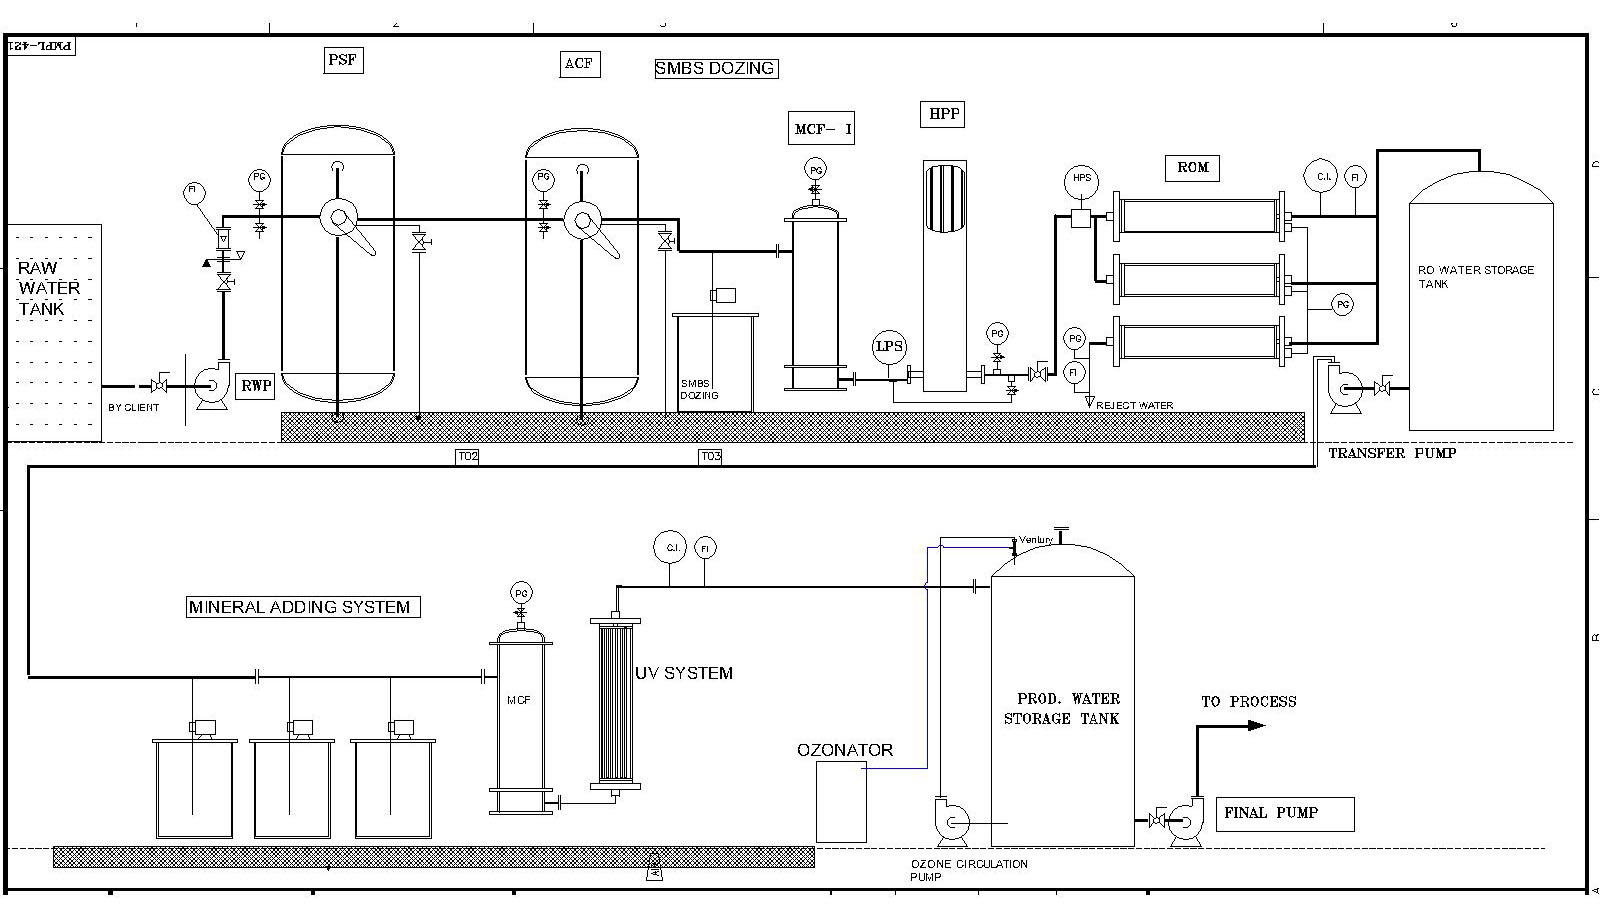 ro plant process flow diagram animation